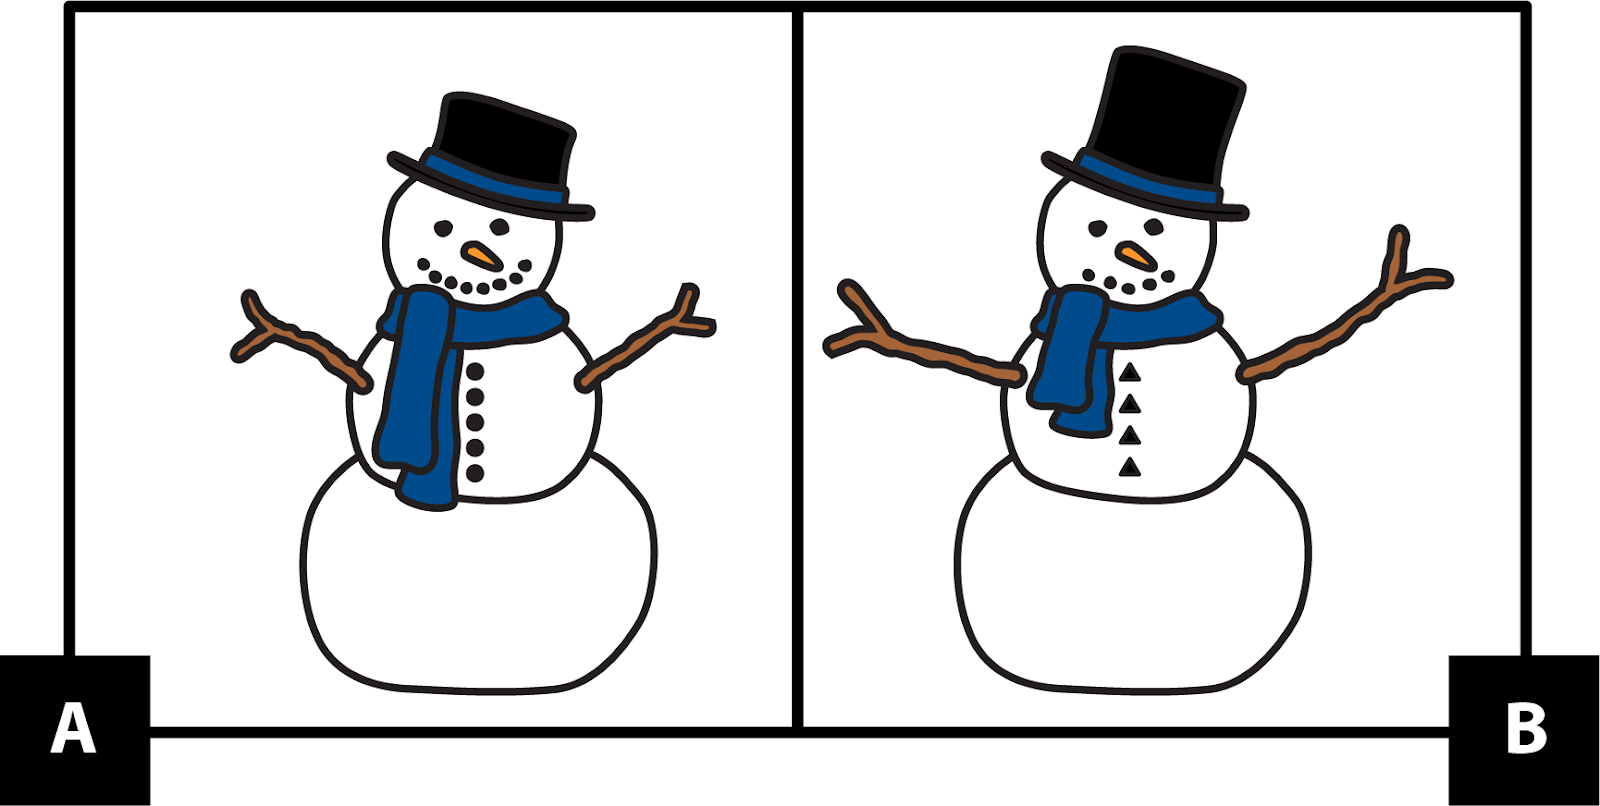 A. shows a snow person with a short black top hat. The face has 2 dots for eyes and an orange triangle nose. The smile has 8 dots. It's wearing a long blue scarf. The arms are 2 short sticks with 2 short parts that look like fingers. It has 5 circle buttons. B. shows a snow person with a tall black top hat. The face has 2 dots for eyes and an orange triangle nose. The smile has 5 dots. It's wearing a short blue scarf. The arms are 2 long sticks with 2 short parts that look like fingers. It has 4 triangle buttons.